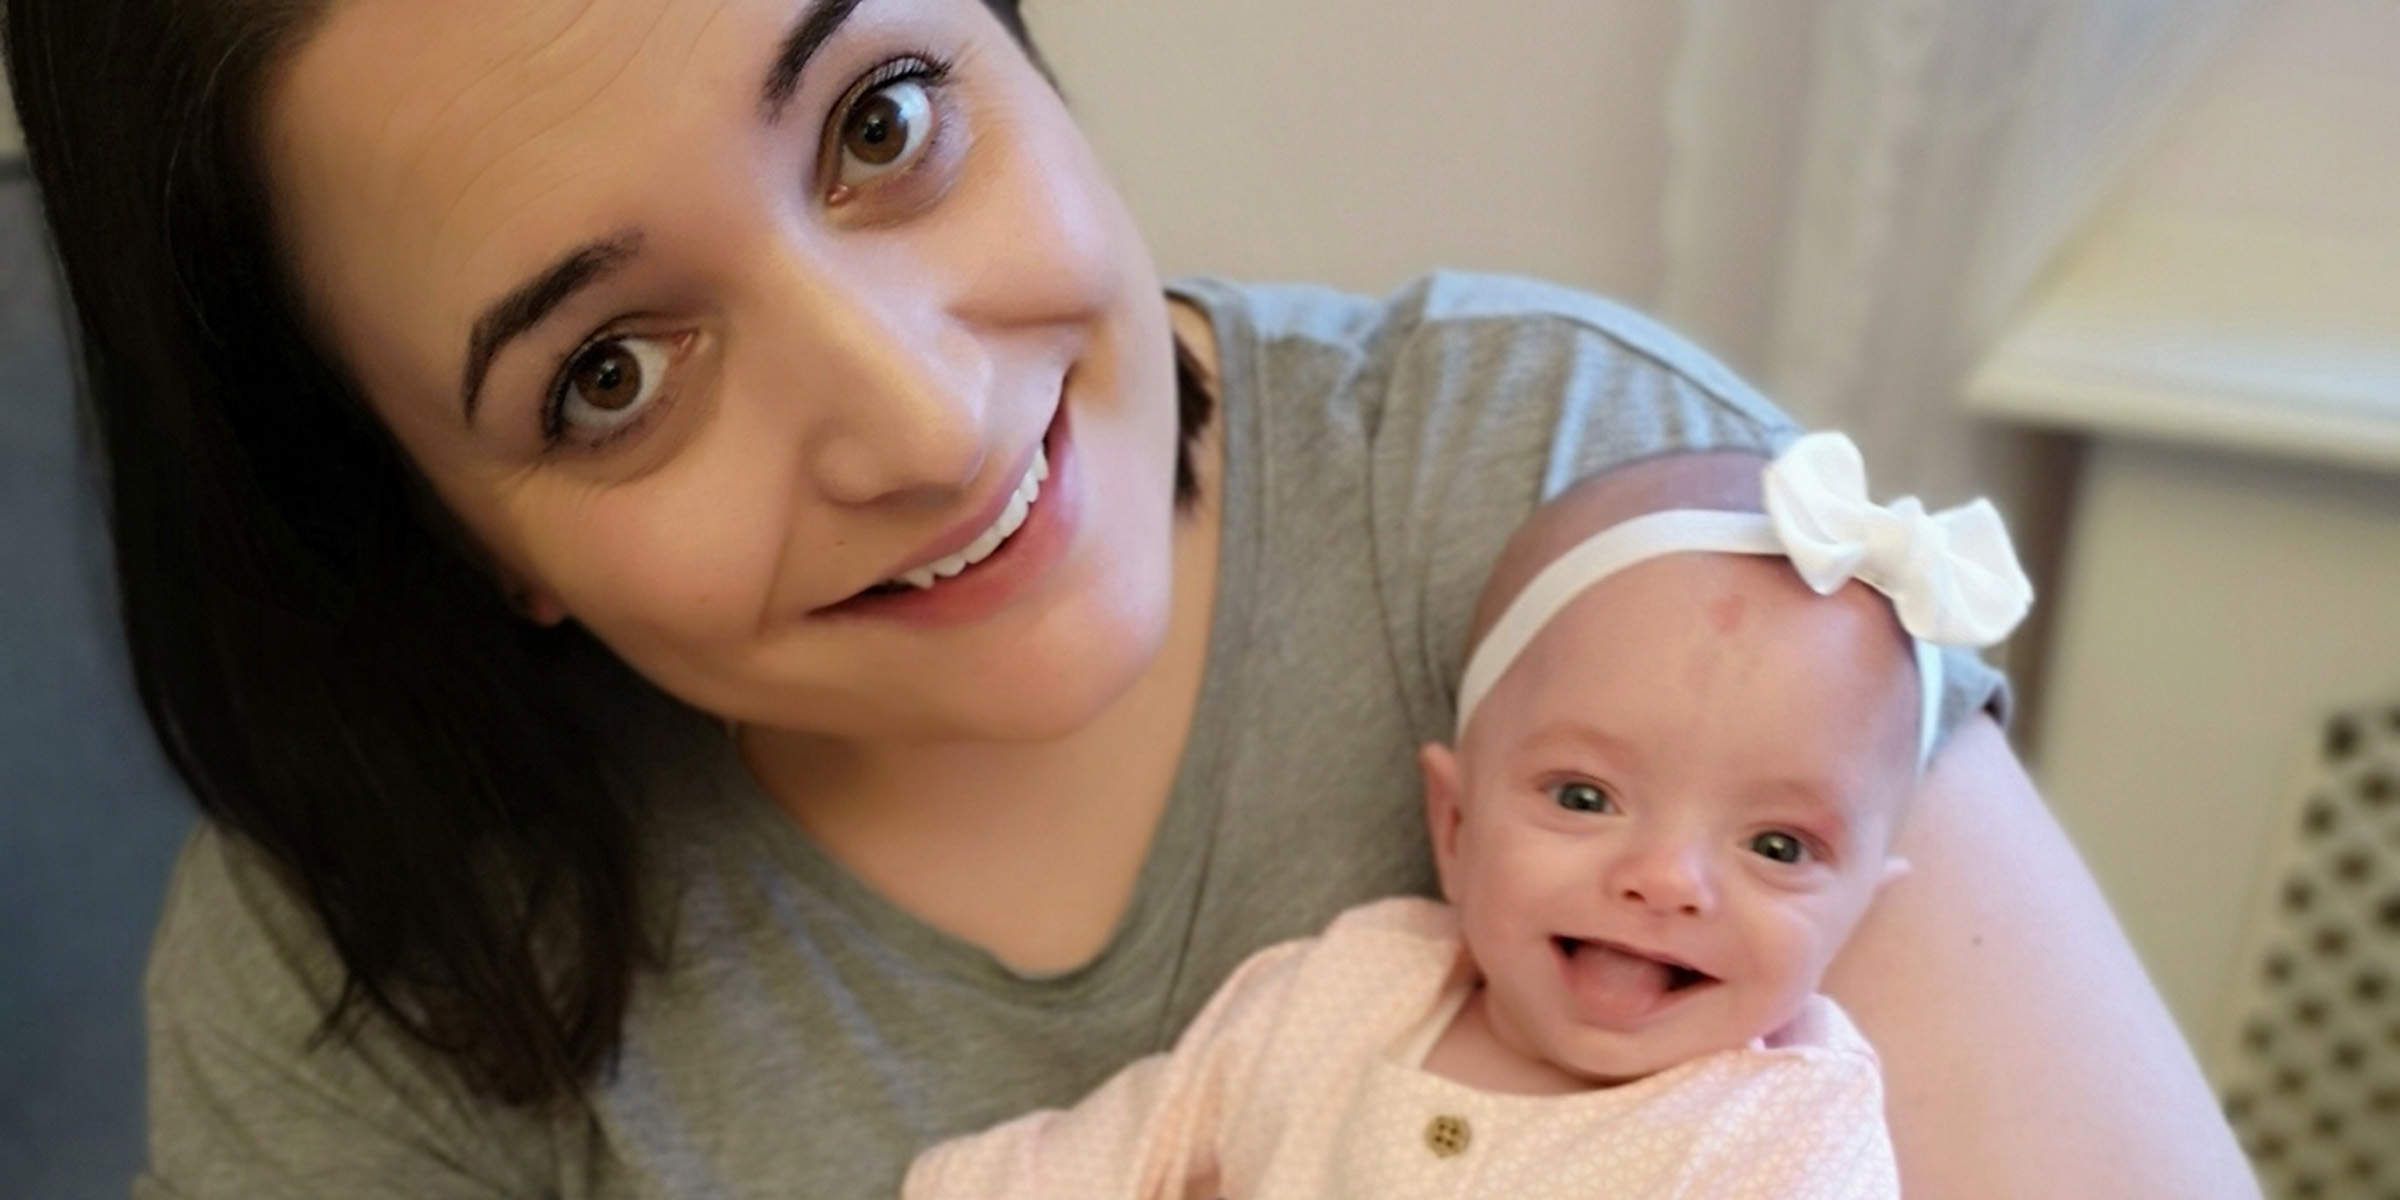 Mom welcomes 'miracle' baby after 13 miscarriages in 10 years